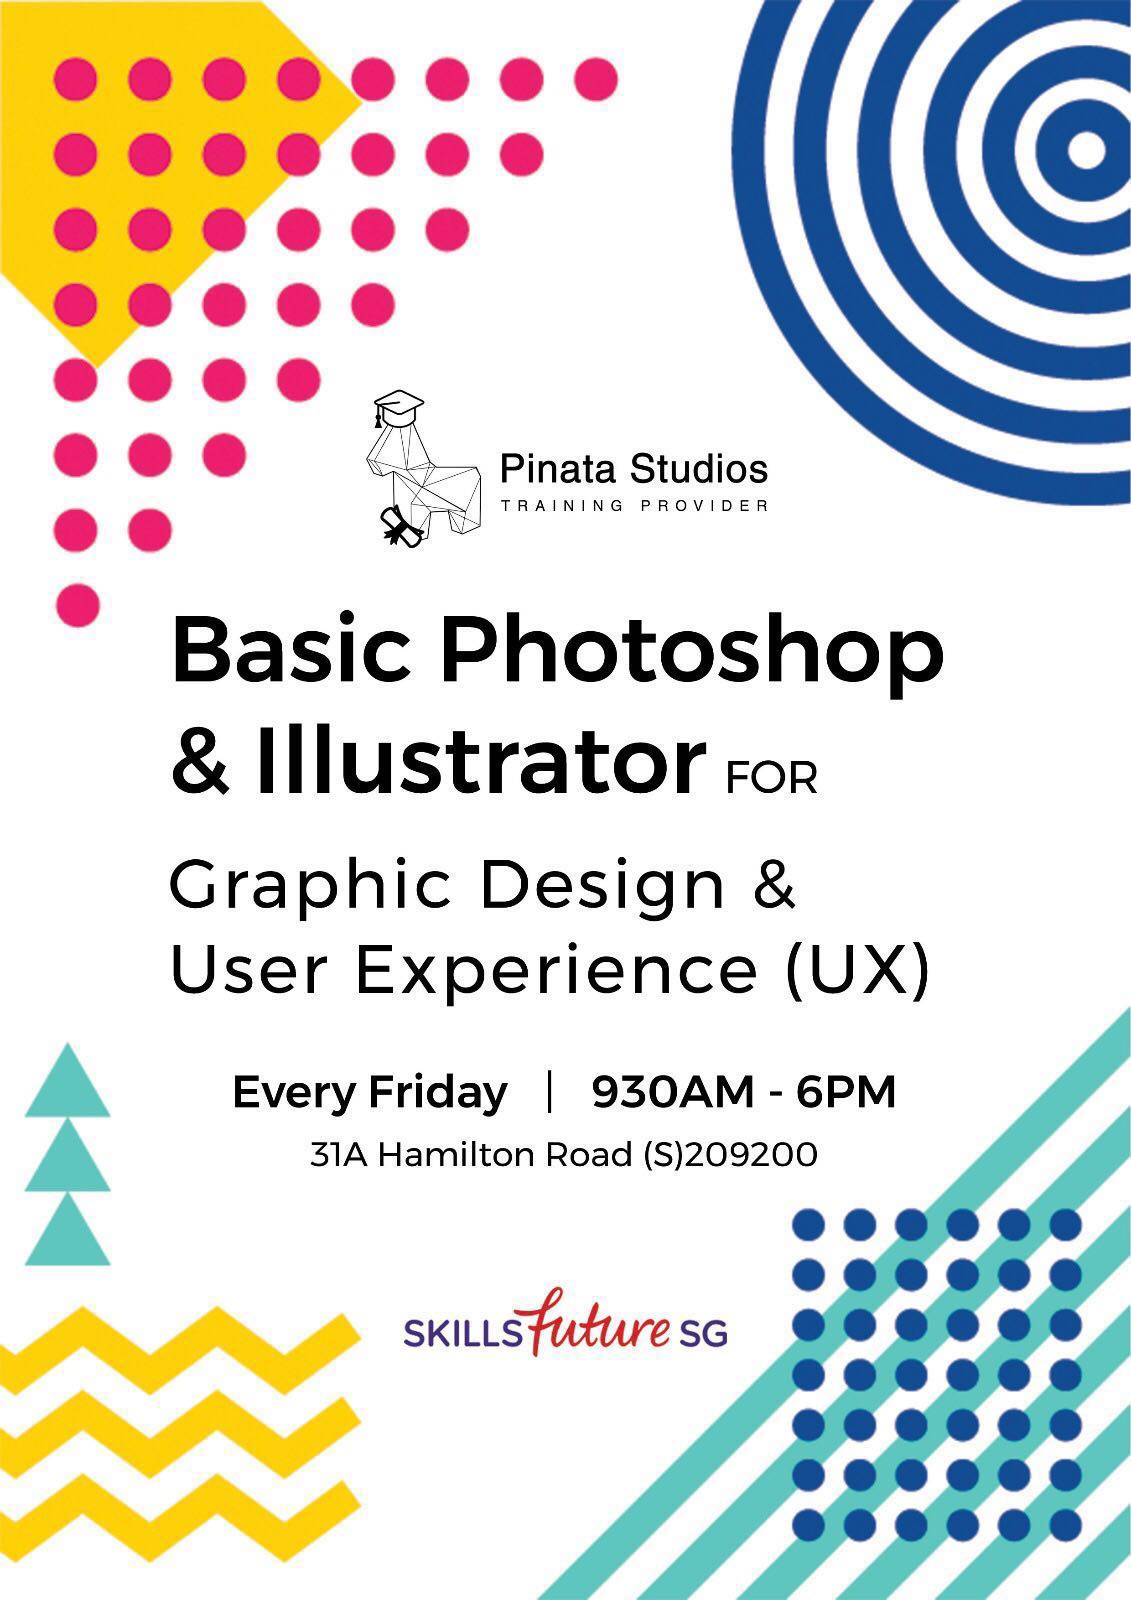 Certificate Course For Photoshop Graphic Design Uiux Learning